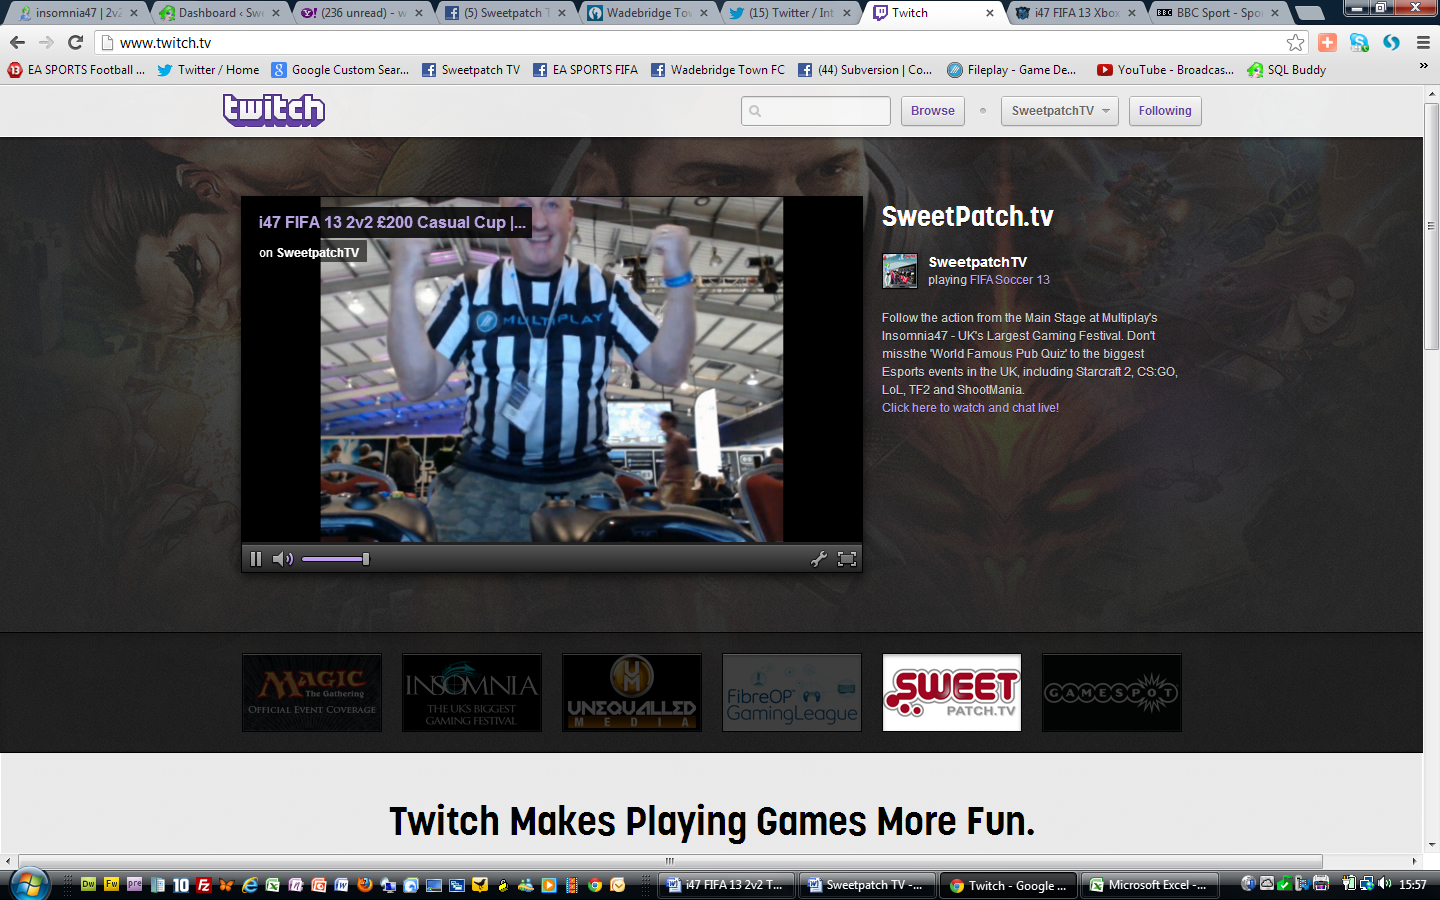 During FIFA 13 2v2 £200 Casual Cup at insomnia47 we were featured on the homepage as a recommended channel!